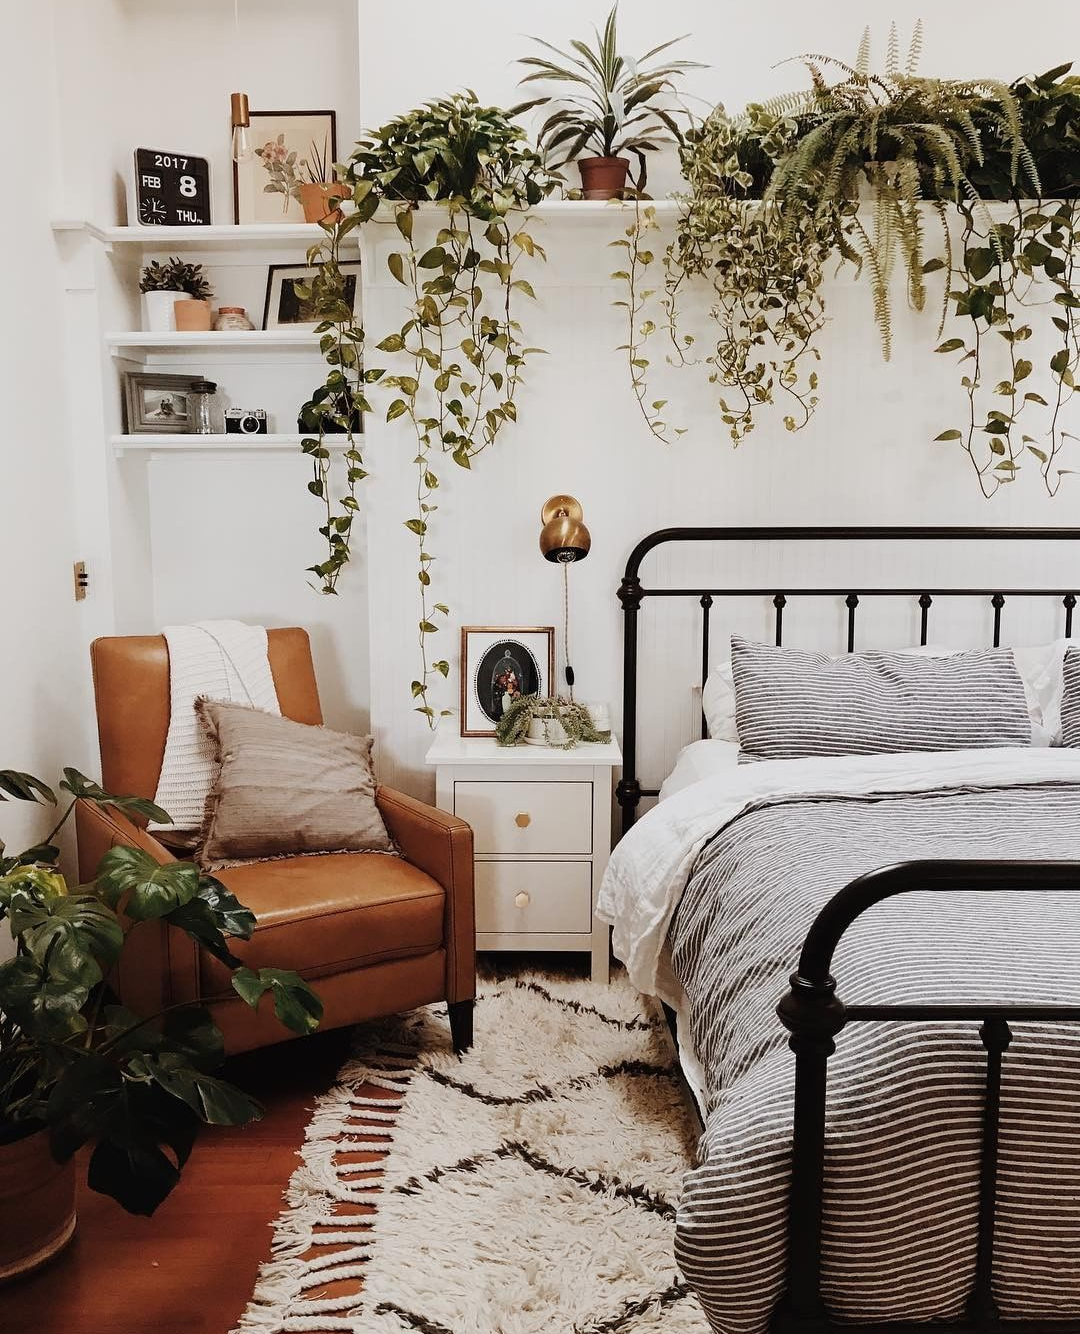 Plant Life Plants In Bedroom Home Decor Cute Bedrooms